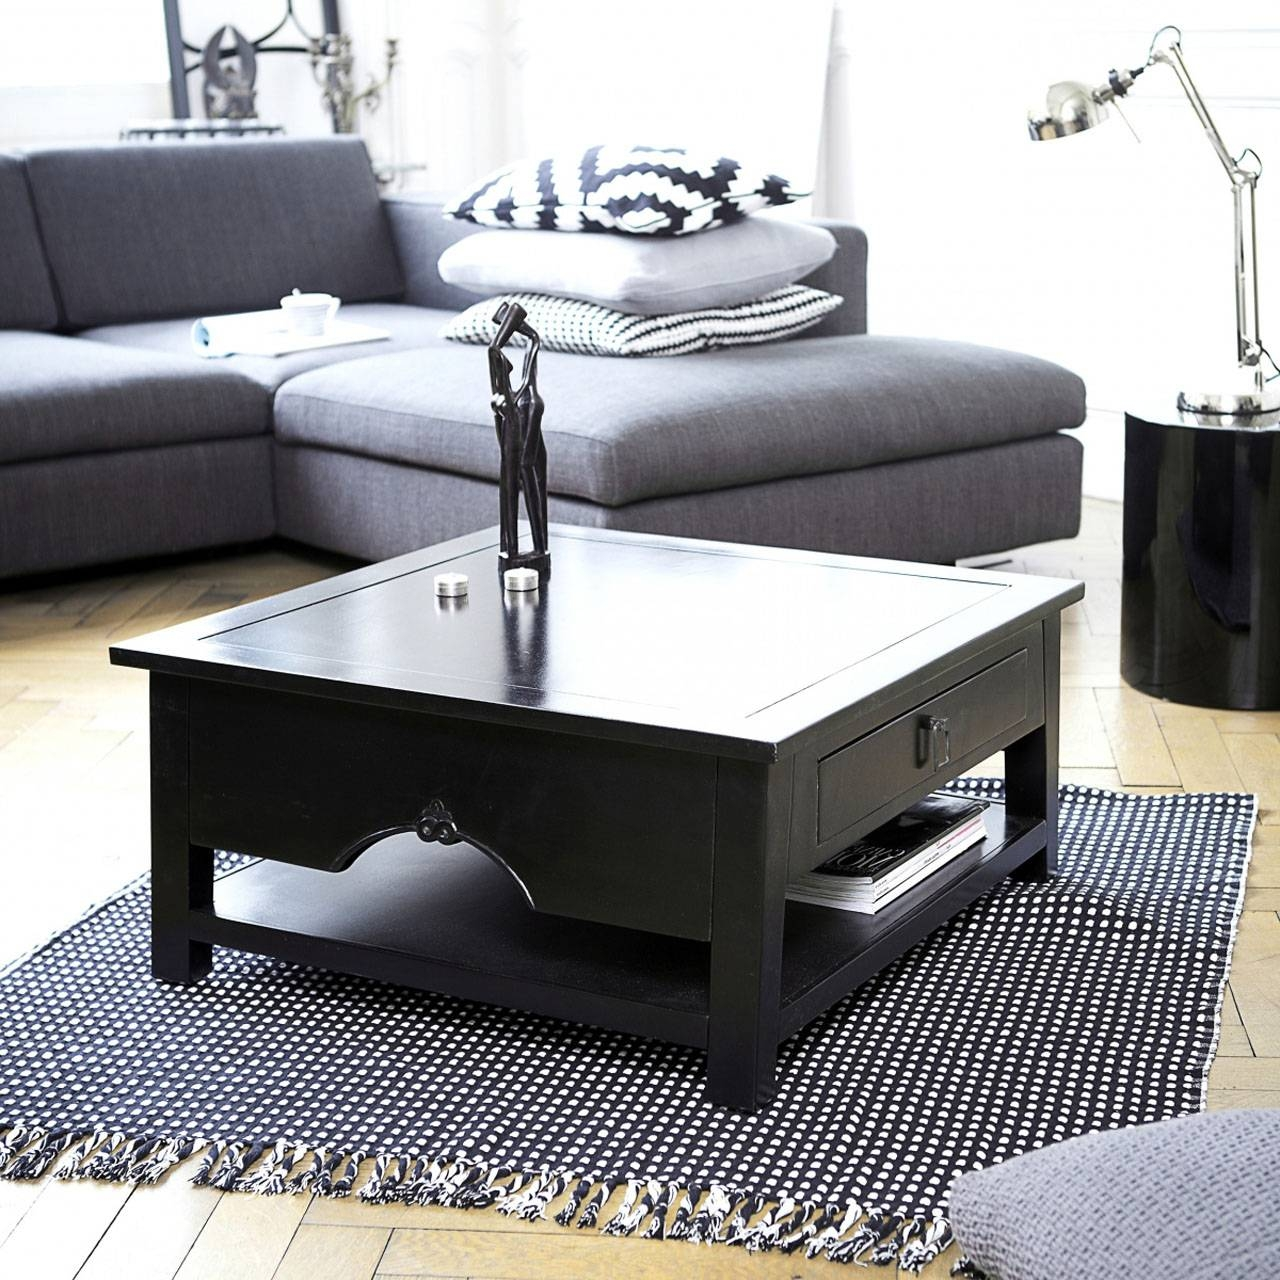 Square Coffee Table As Your Home Furnishing - Chocoaddicts throughout Square Black Coffee Tables (Image 28 of 30)